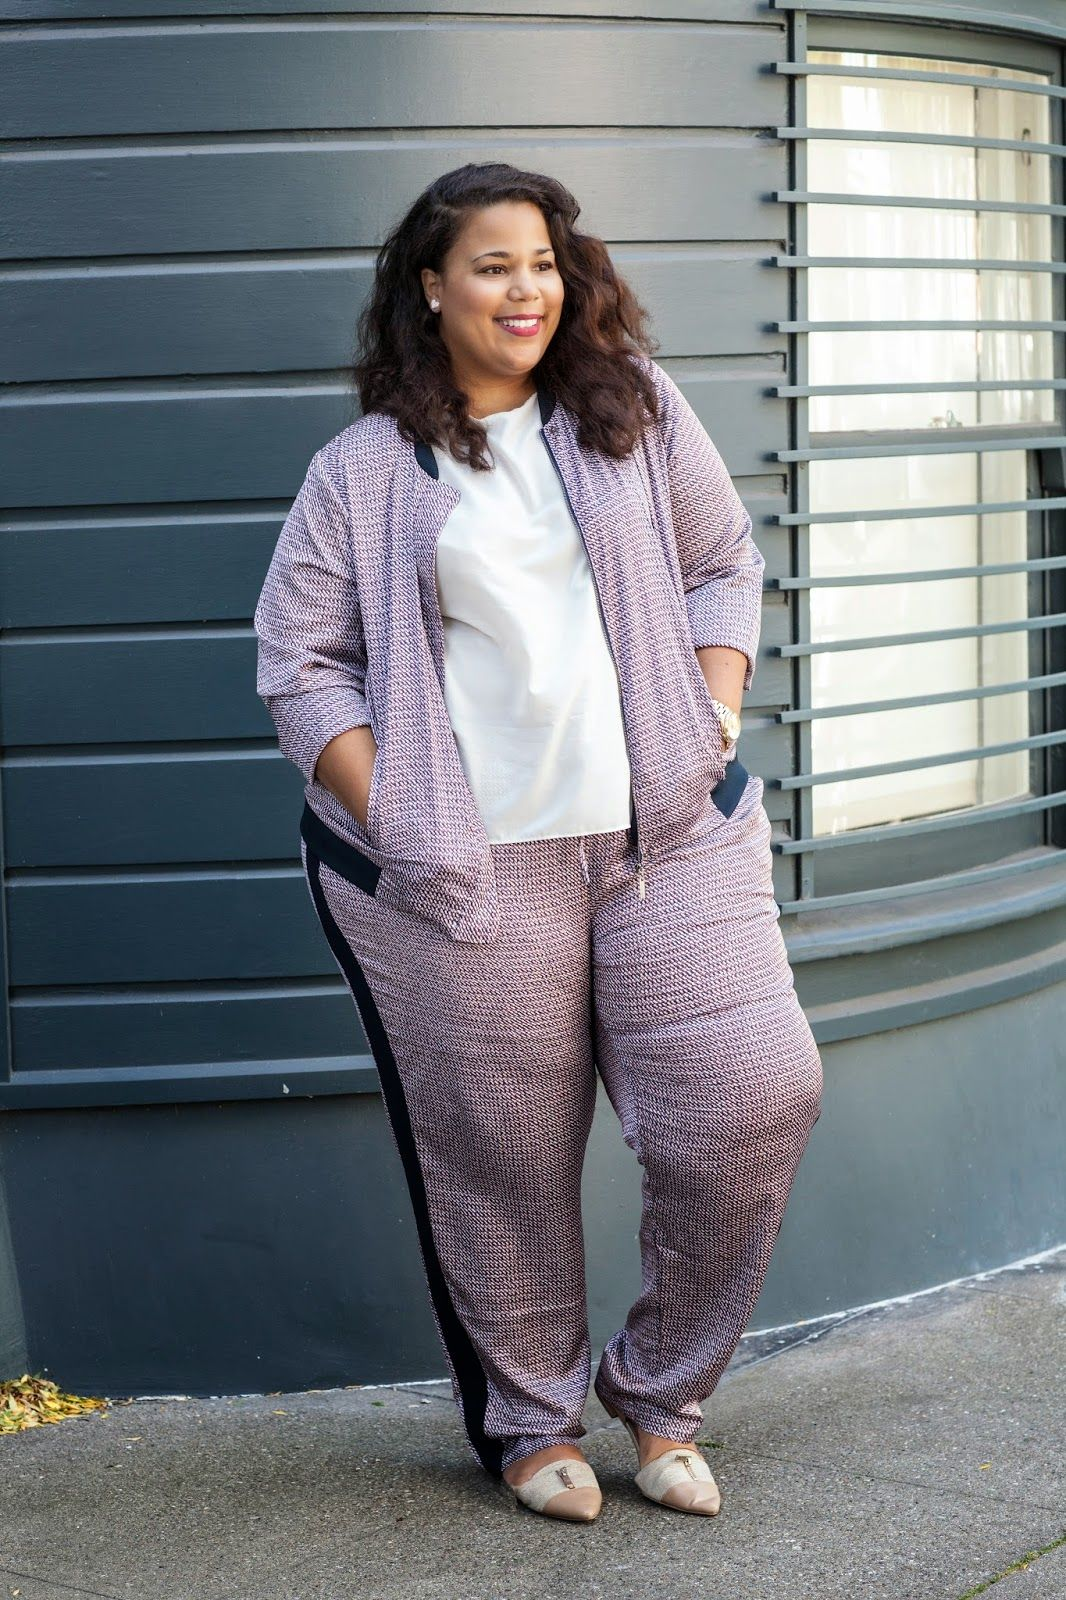 society shoe review, plus size jogging suit   my weakness